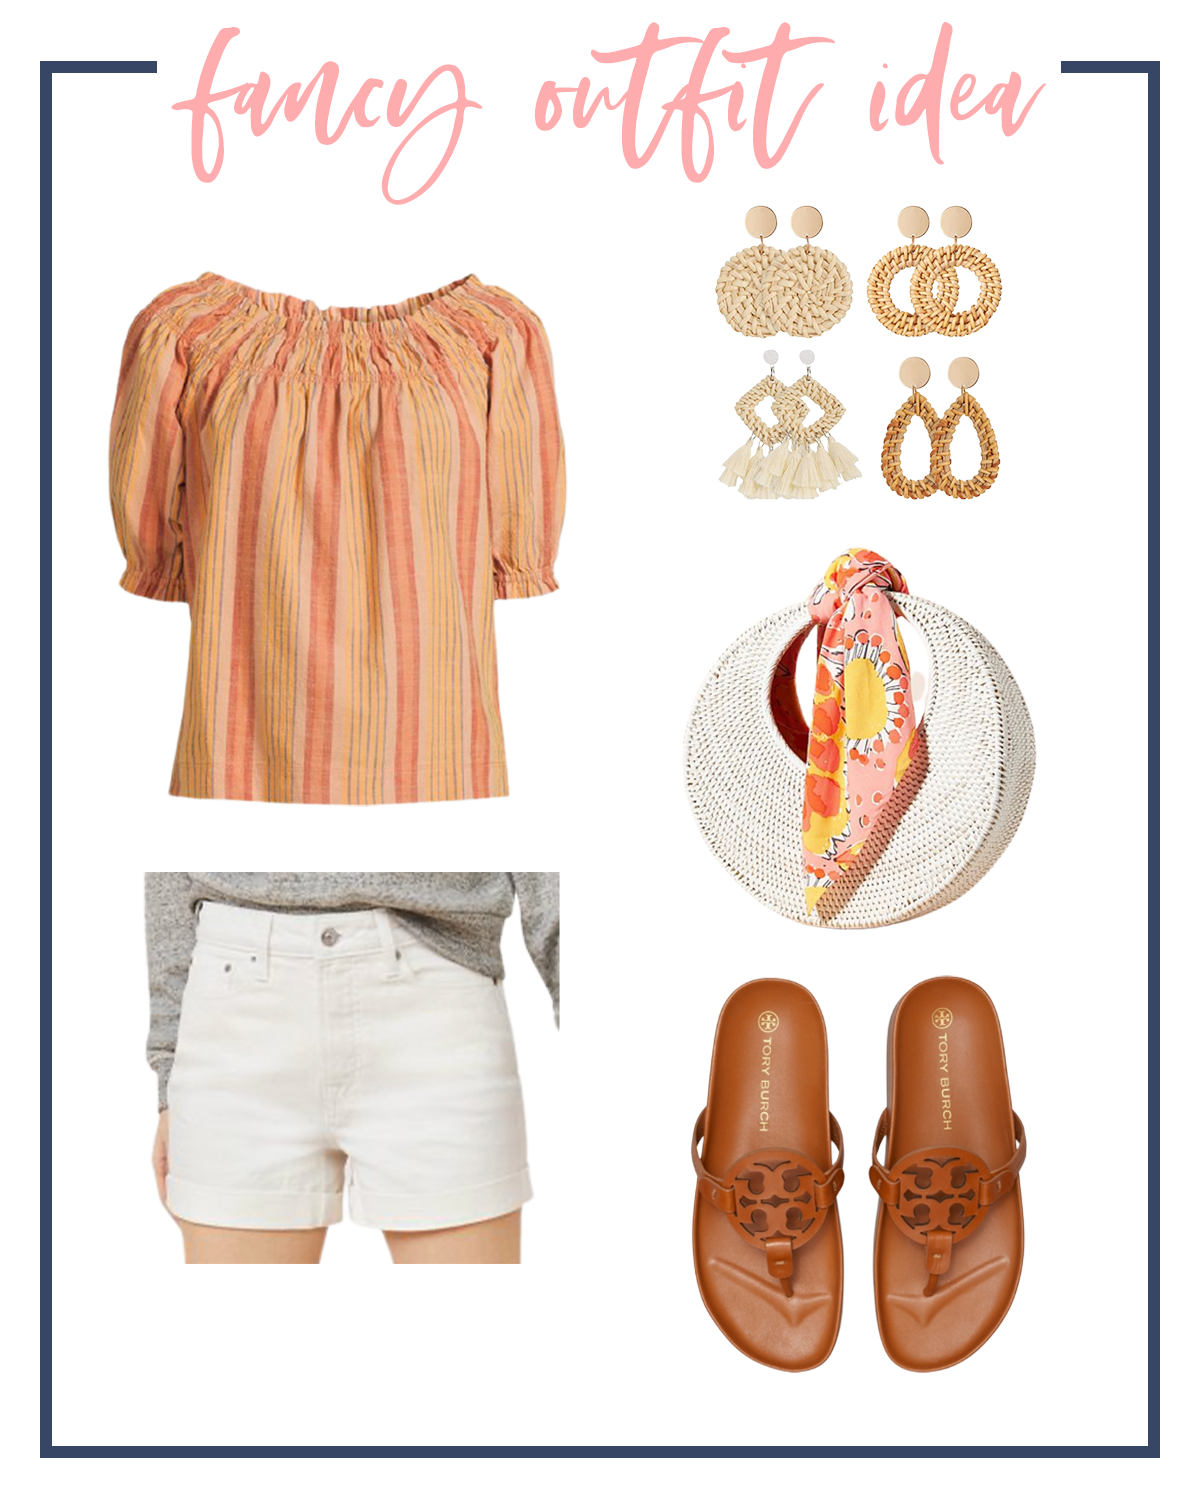 Summer Outfits by popular Houston fashion blog, The House of Fancy: collage image of orange and yellow stripe peasant top, raffia statement earrings, white woven handbag, brown Tory Burch slide sandals, and white shorts.